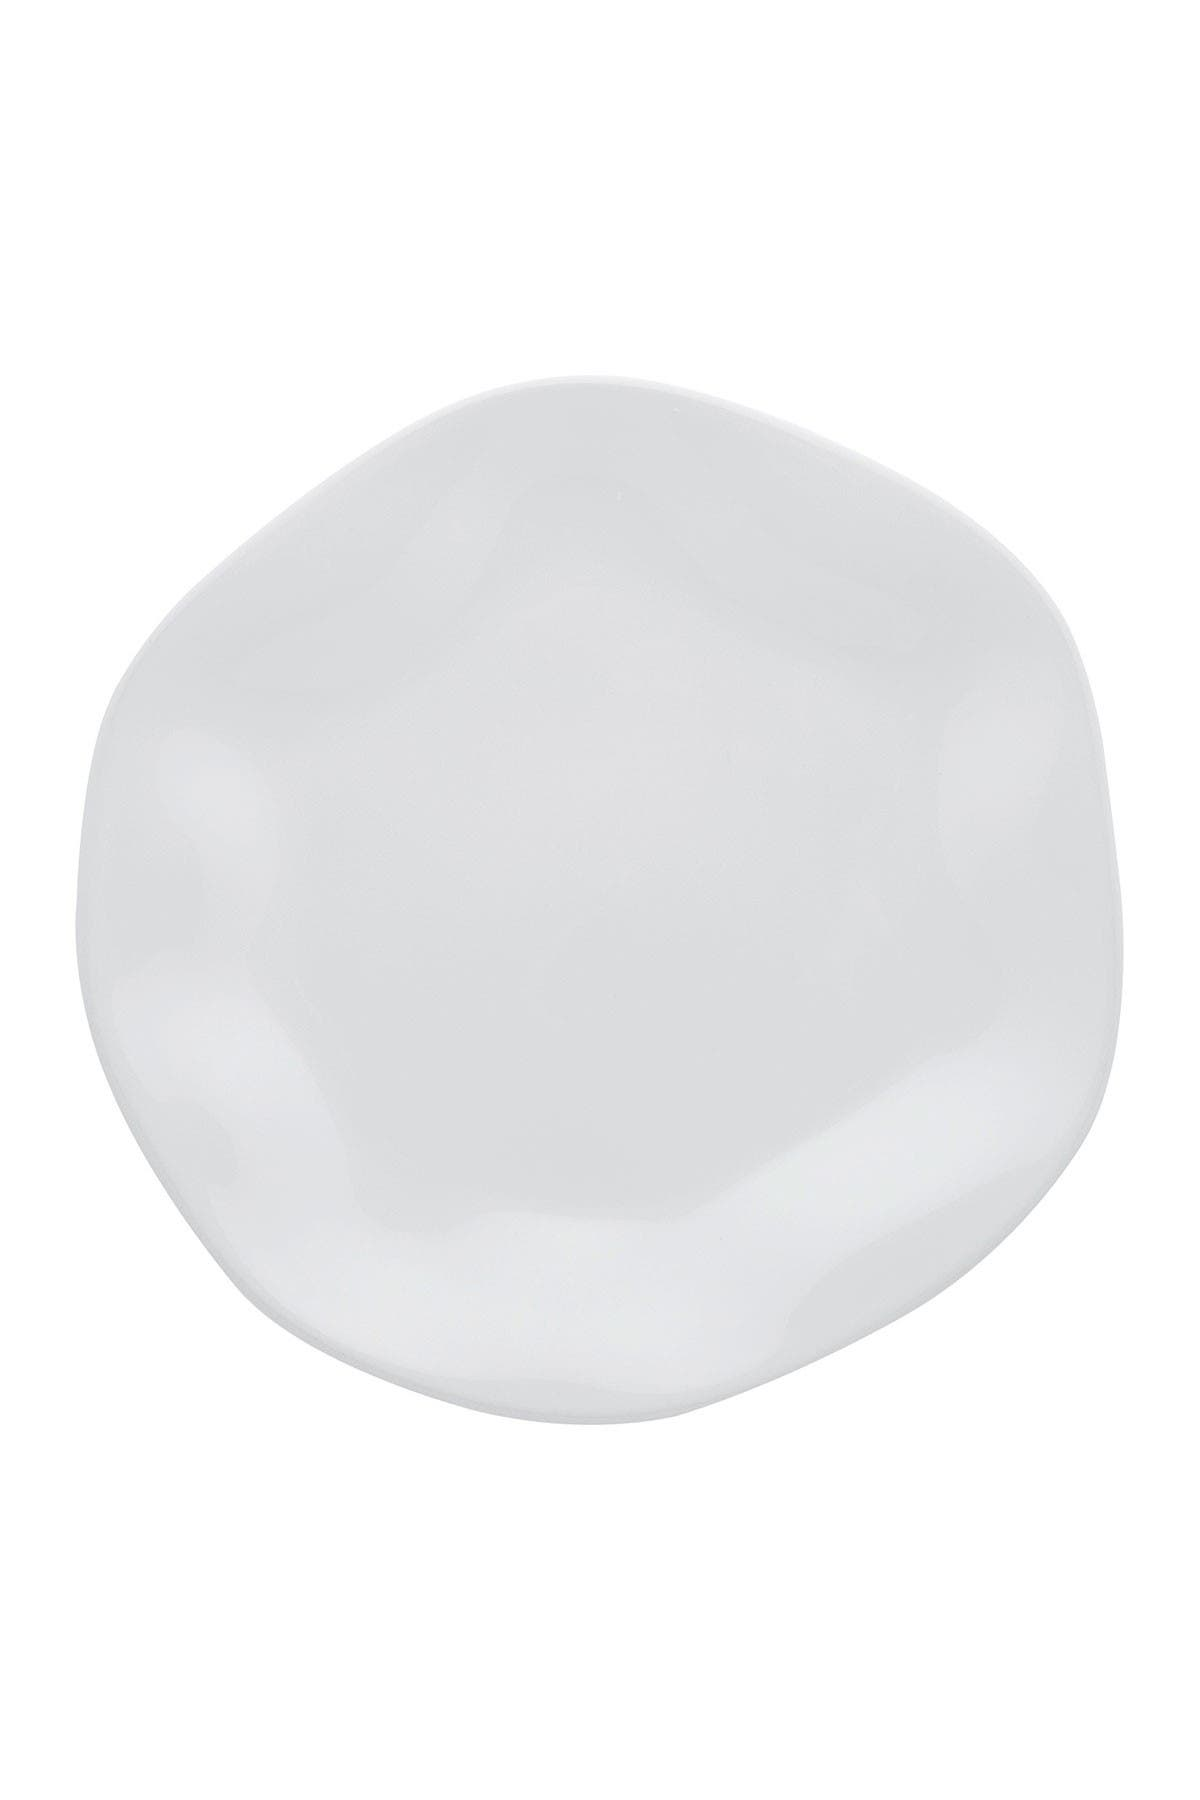 "Image of Manhattan Comfort RYO 6 Large 11.02"" Dinner Plates - White"